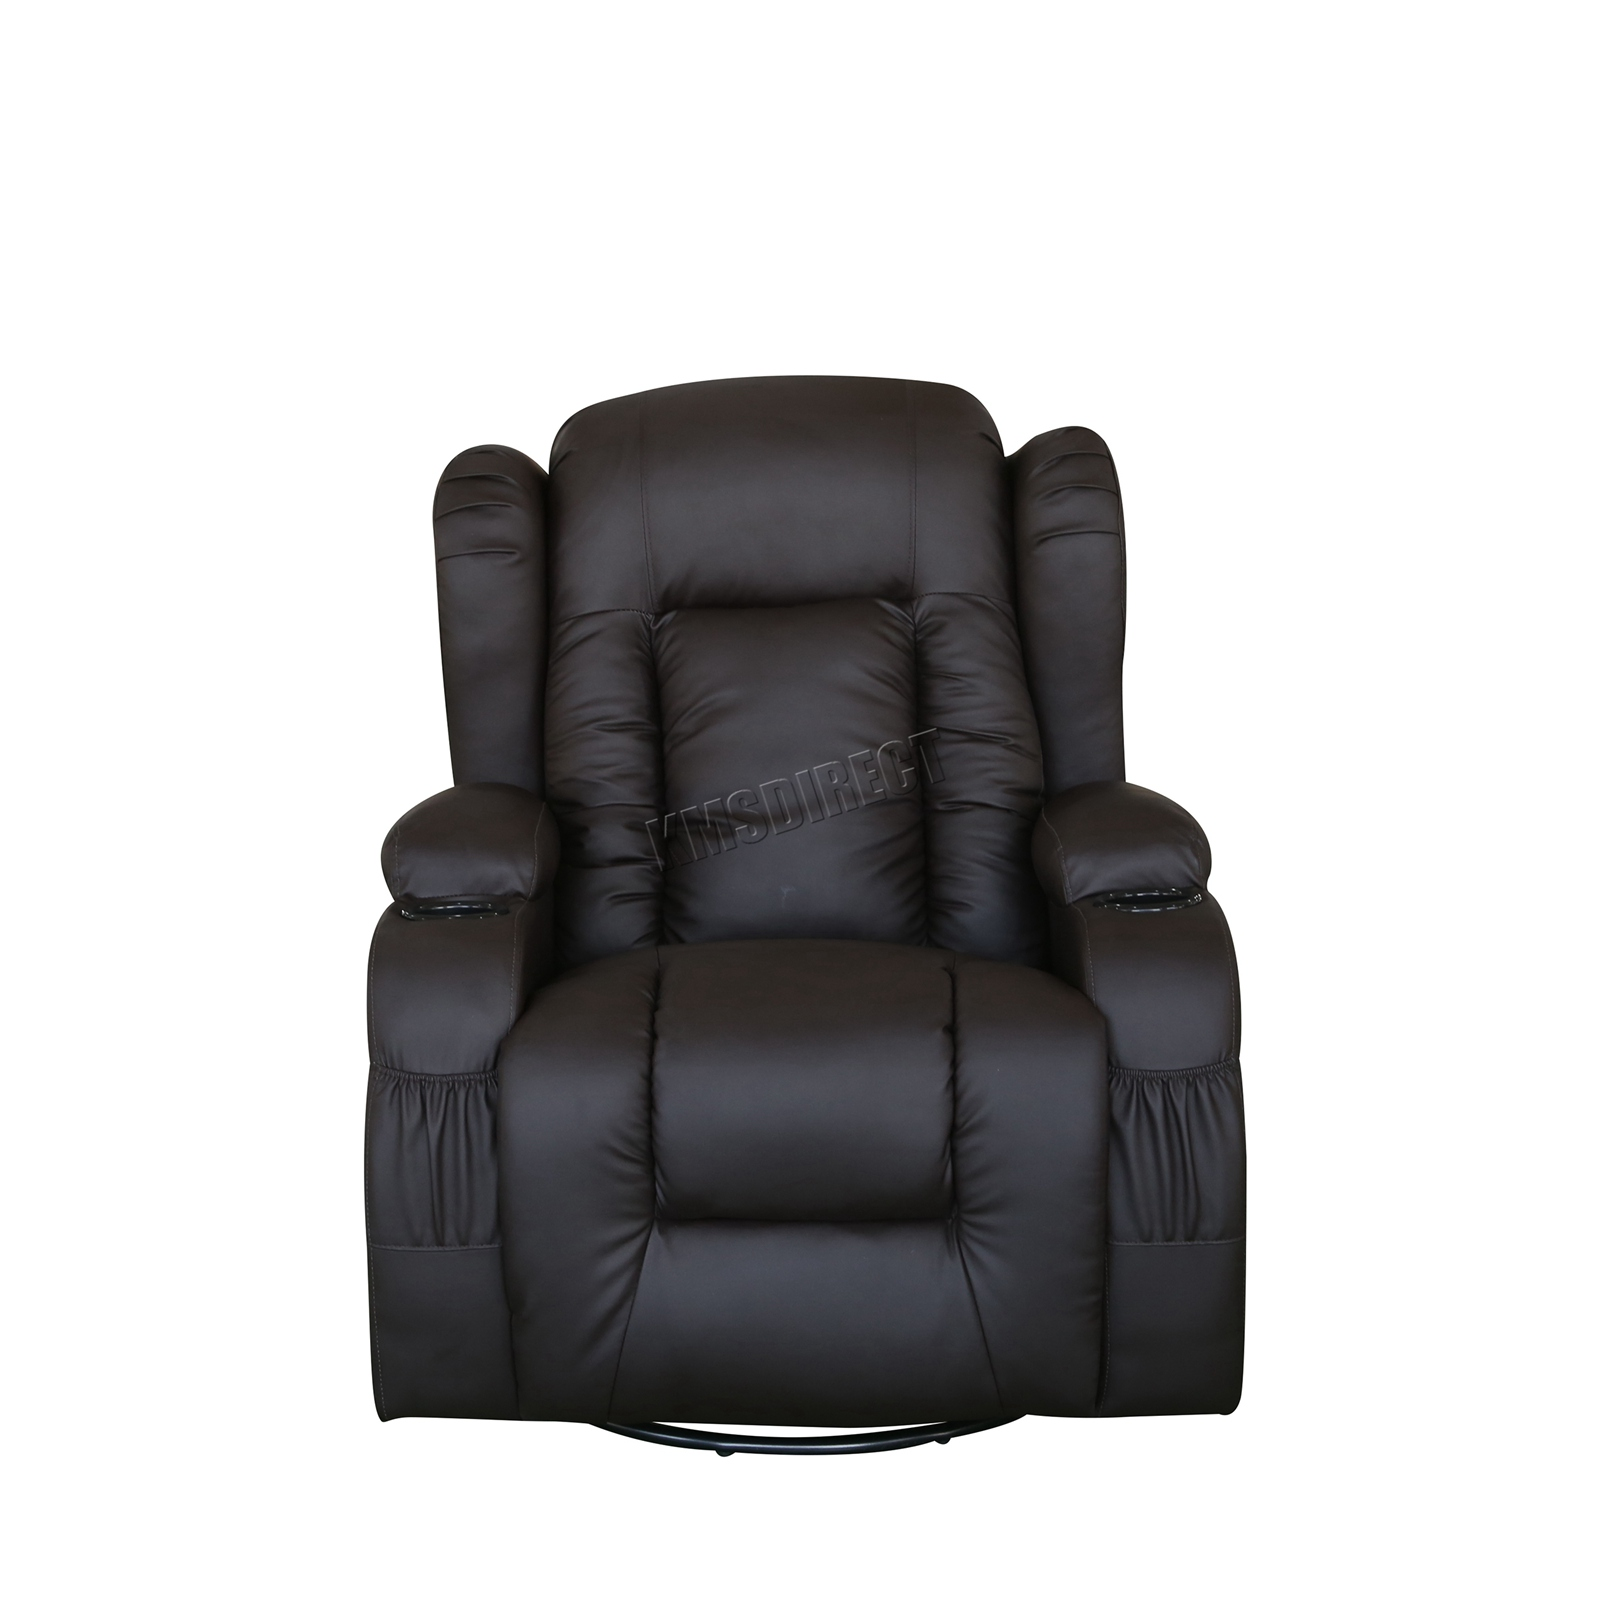 WESTWOOD-Leather-Recliner-Armchair-Swivel-Heated-chair-Massage-Gaming-Chair thumbnail 25